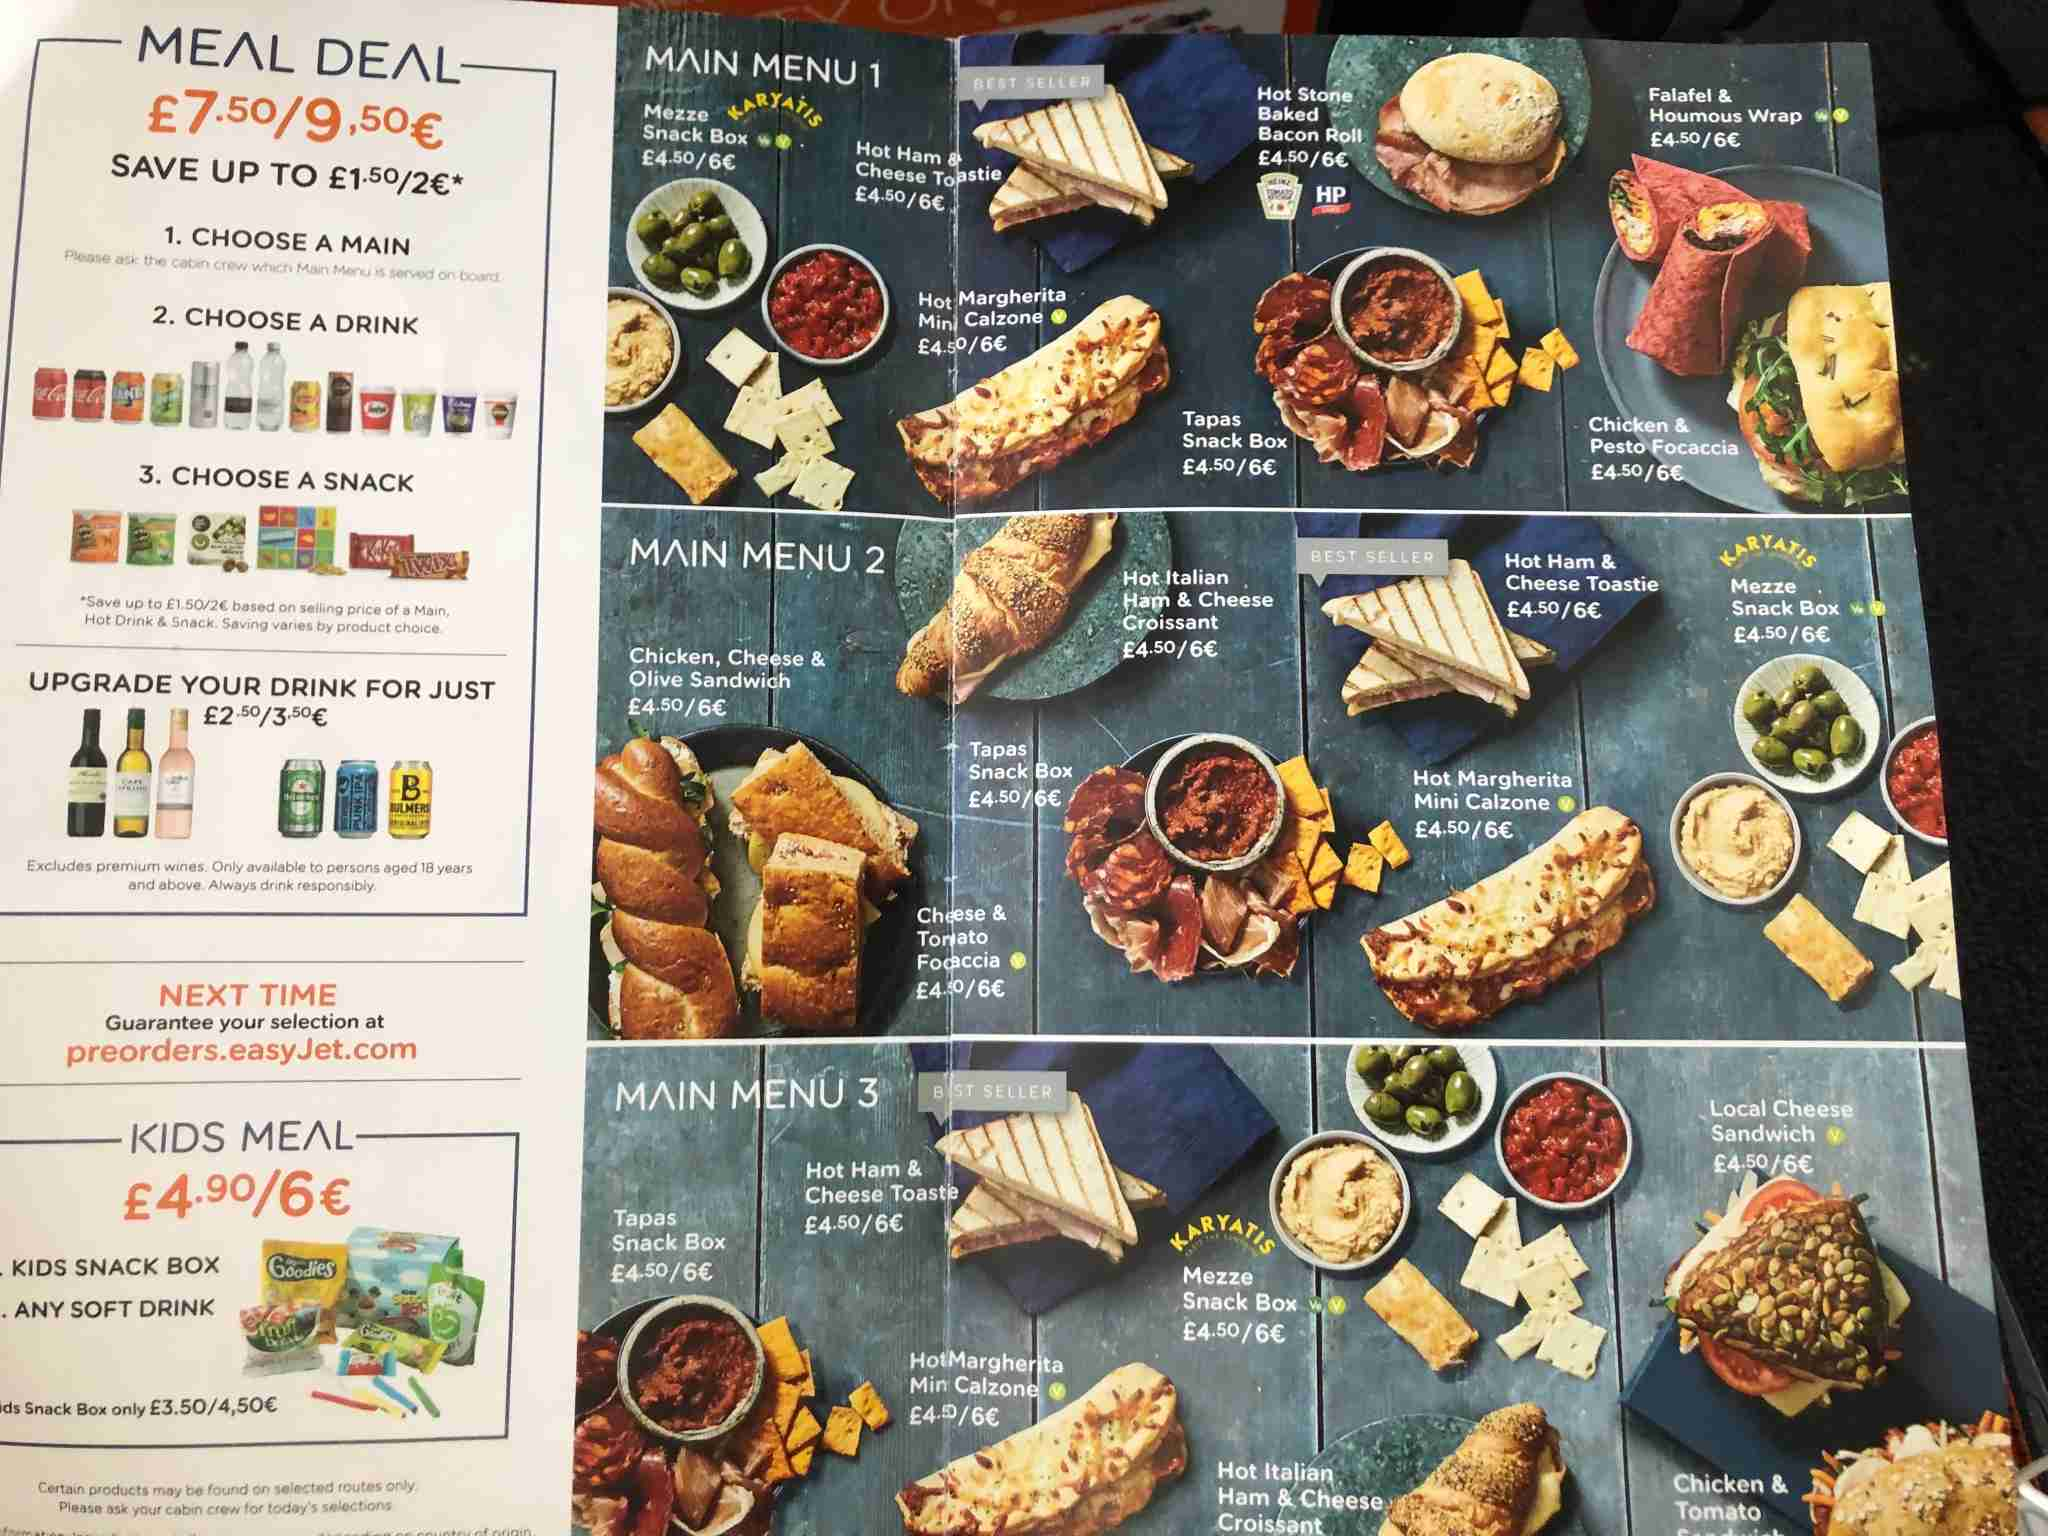 Some of the easyJet food offerings. Photo by Lori Zaino for The Points Guy UK.